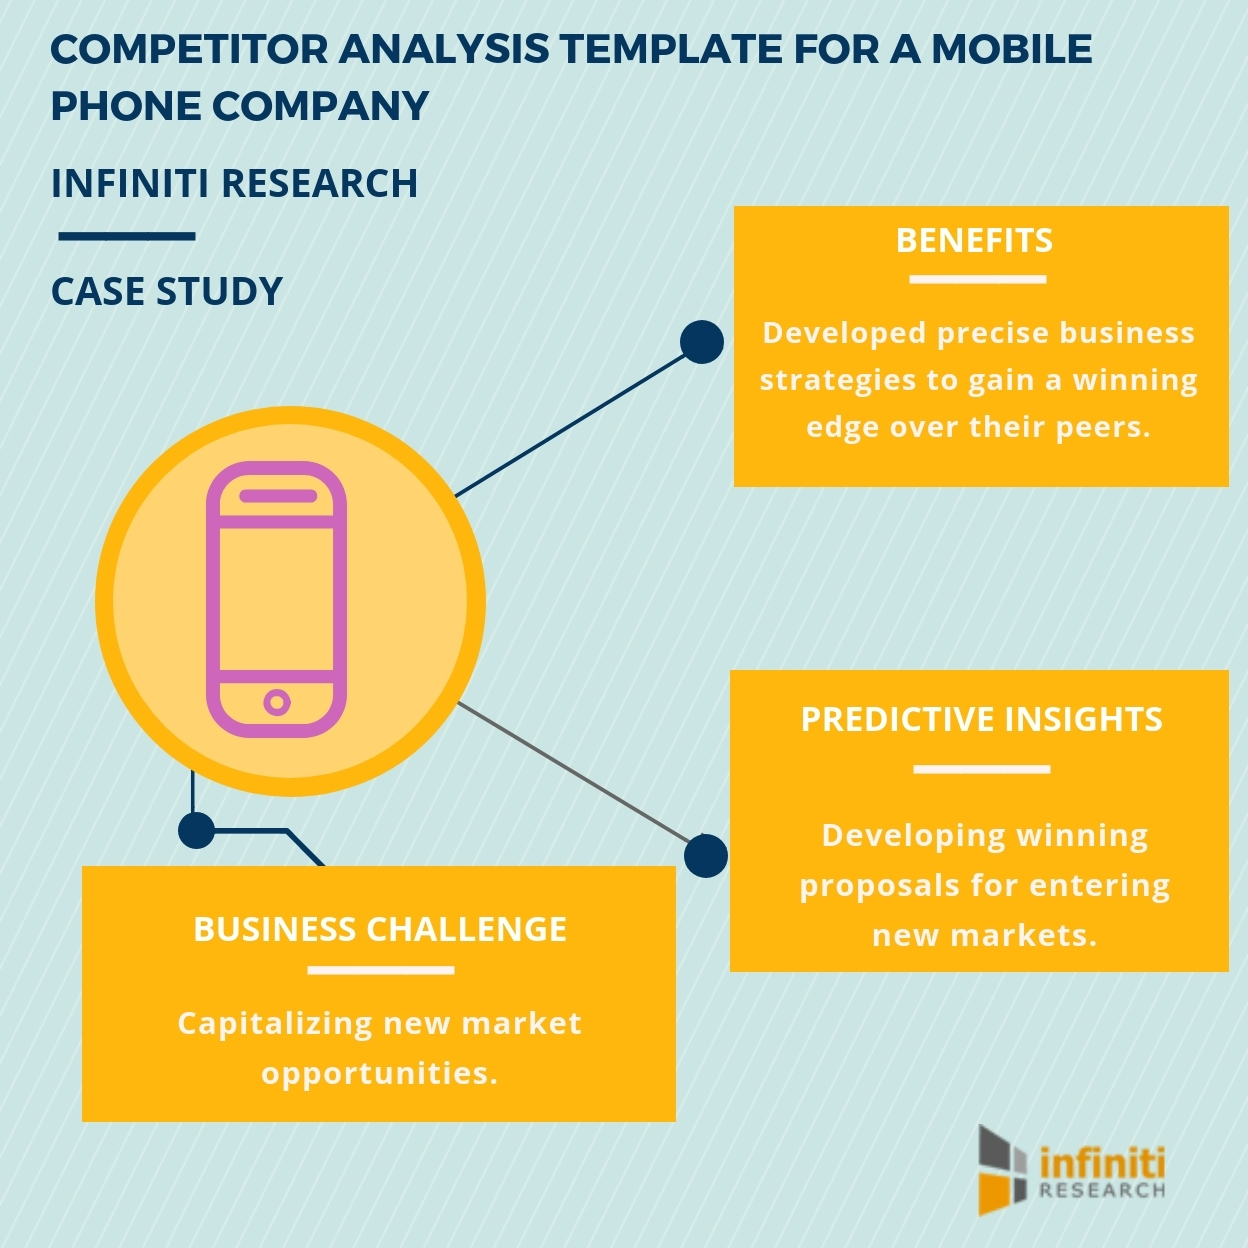 hight resolution of evaluating investment potential in new markets with the help of infiniti research s competitor analysis template business wire